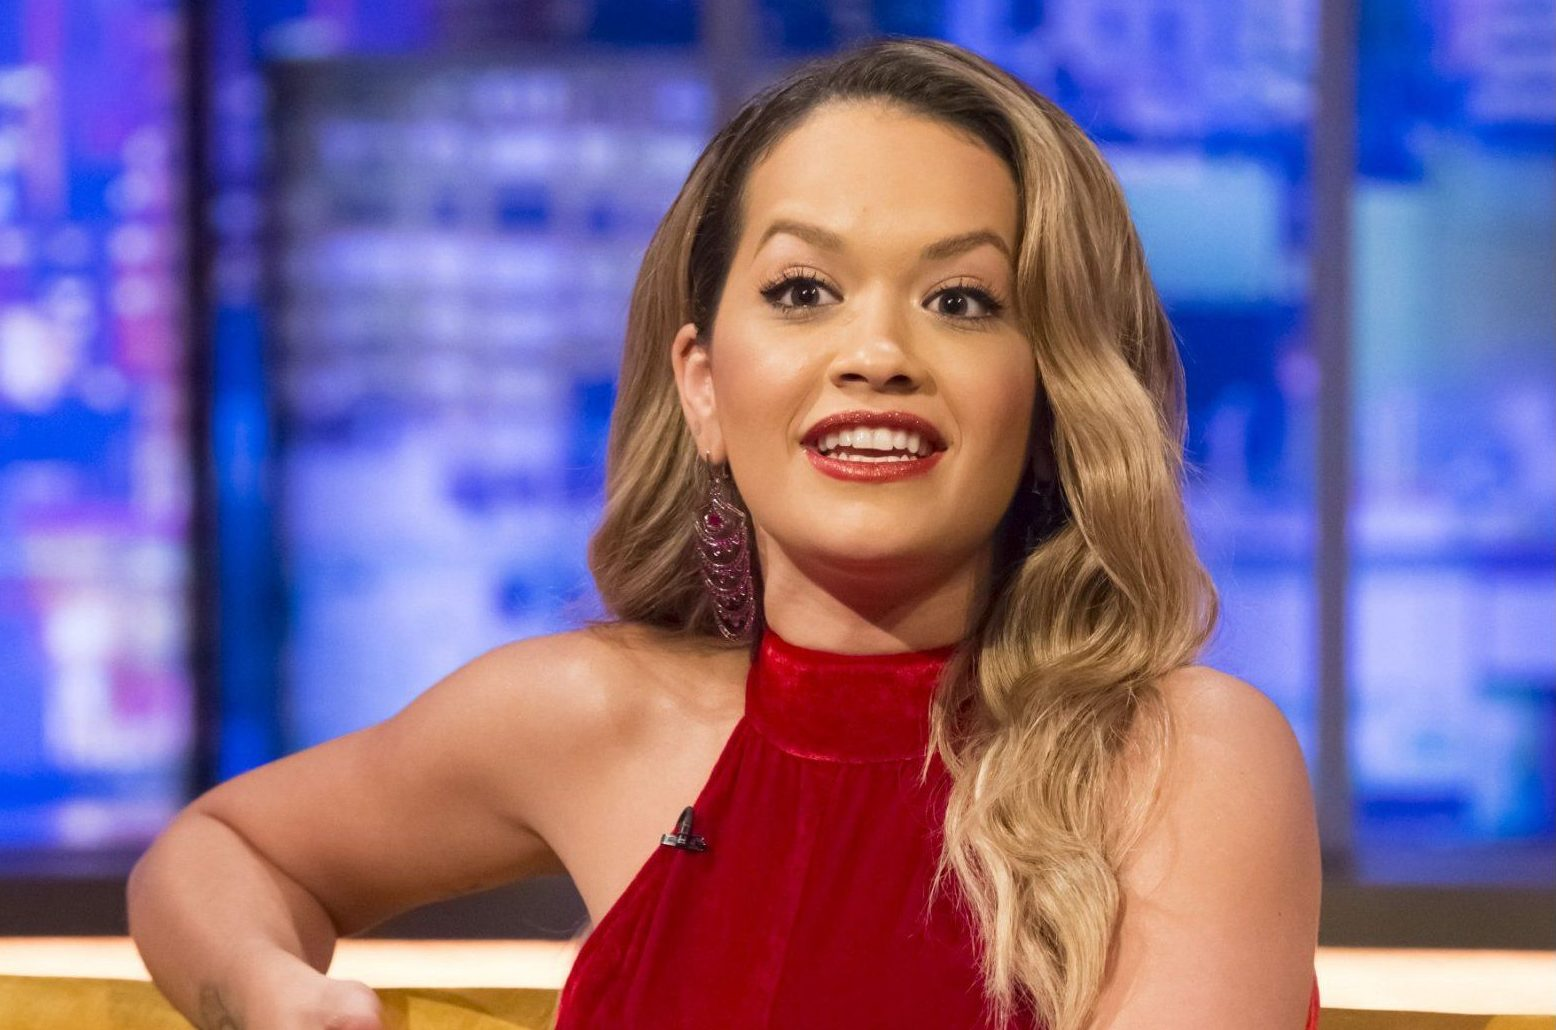 Rita Ora praises 'brave' stars speaking out on 'insane' Harvey Weinstein allegations